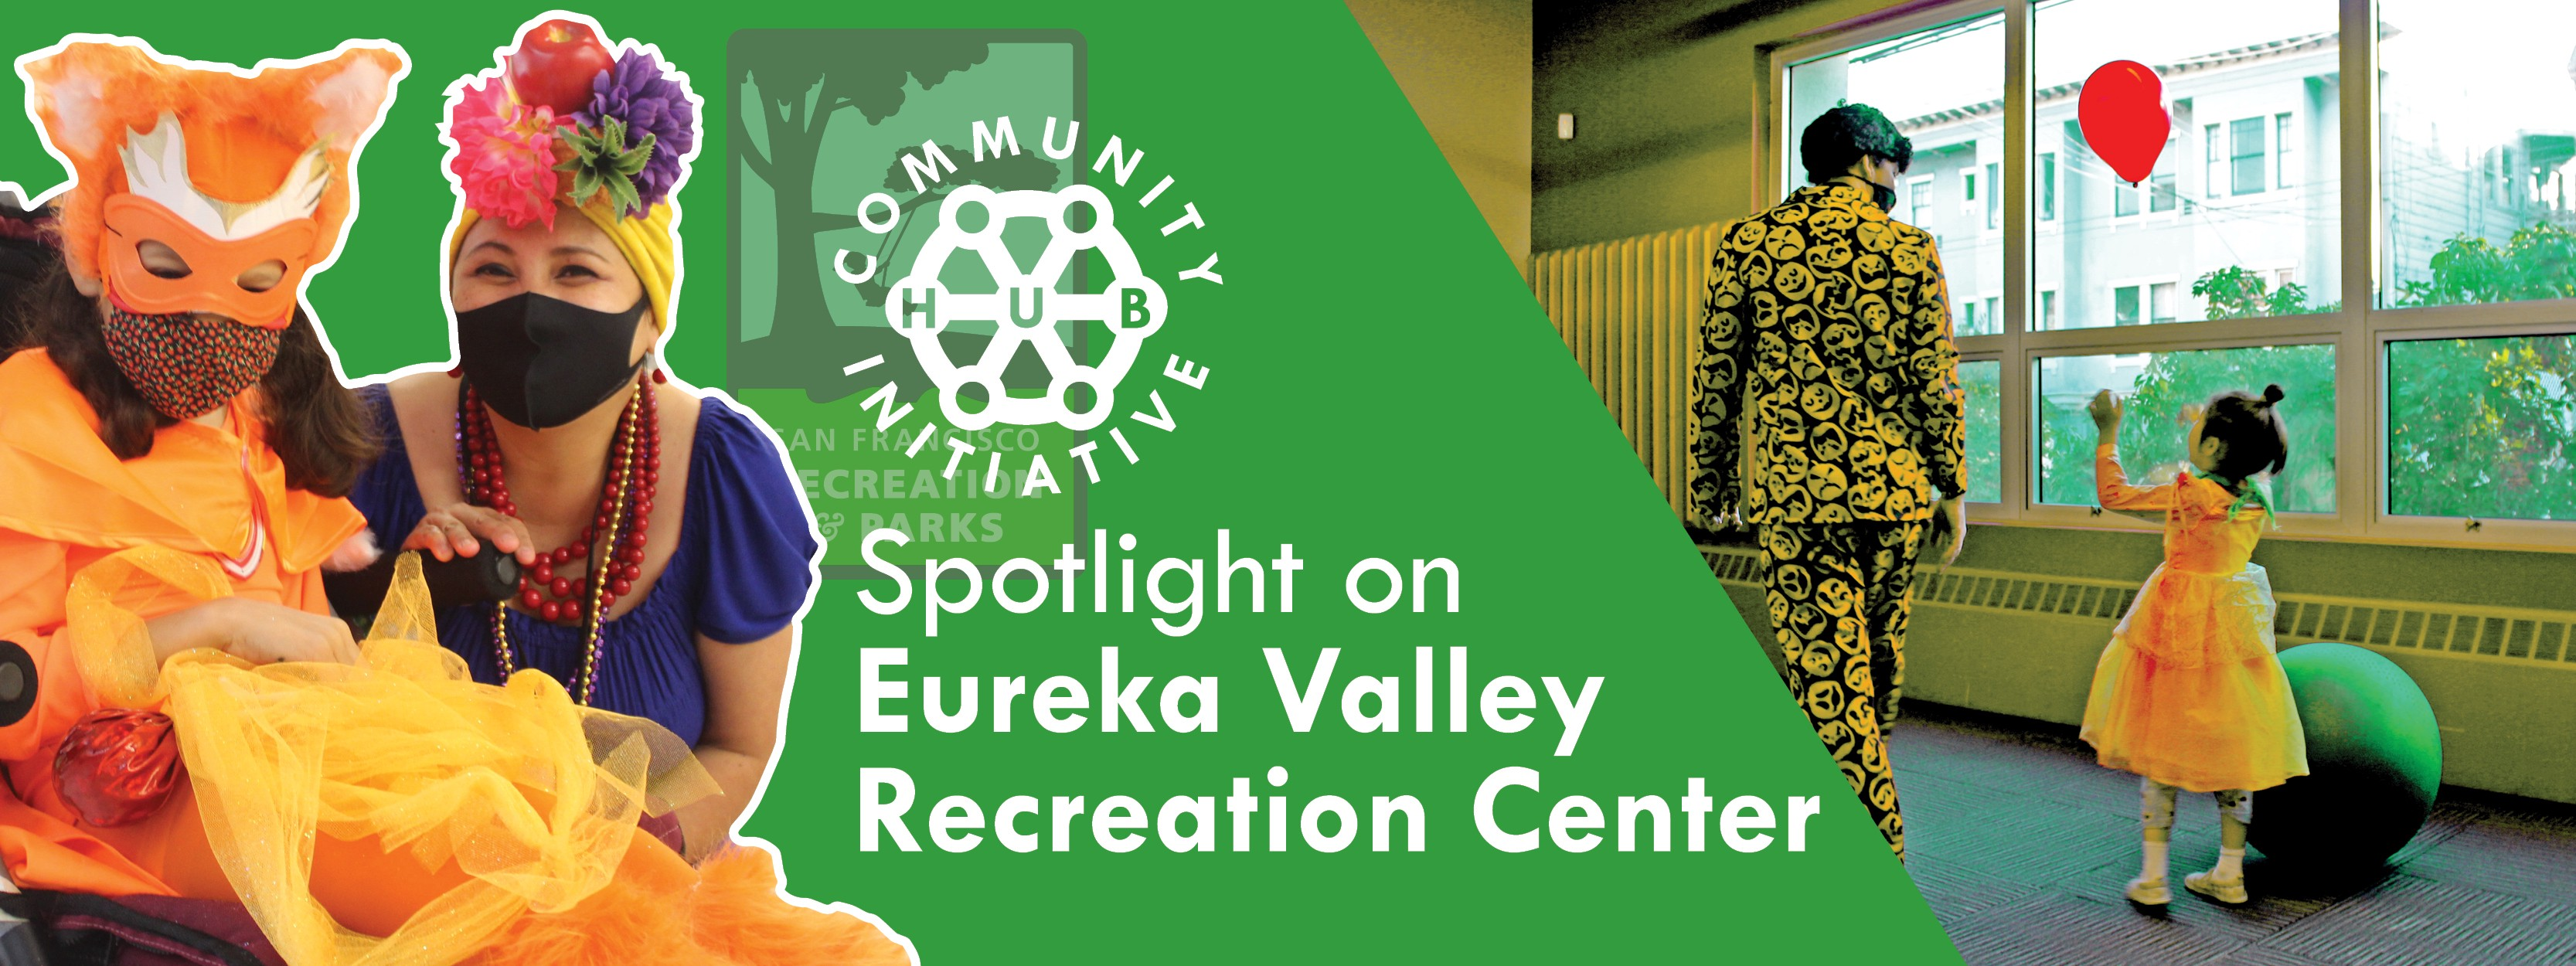 Community Hub Initiative: Spotlight on Eureka Valley Recreation Center (SF Recreation & Parks)